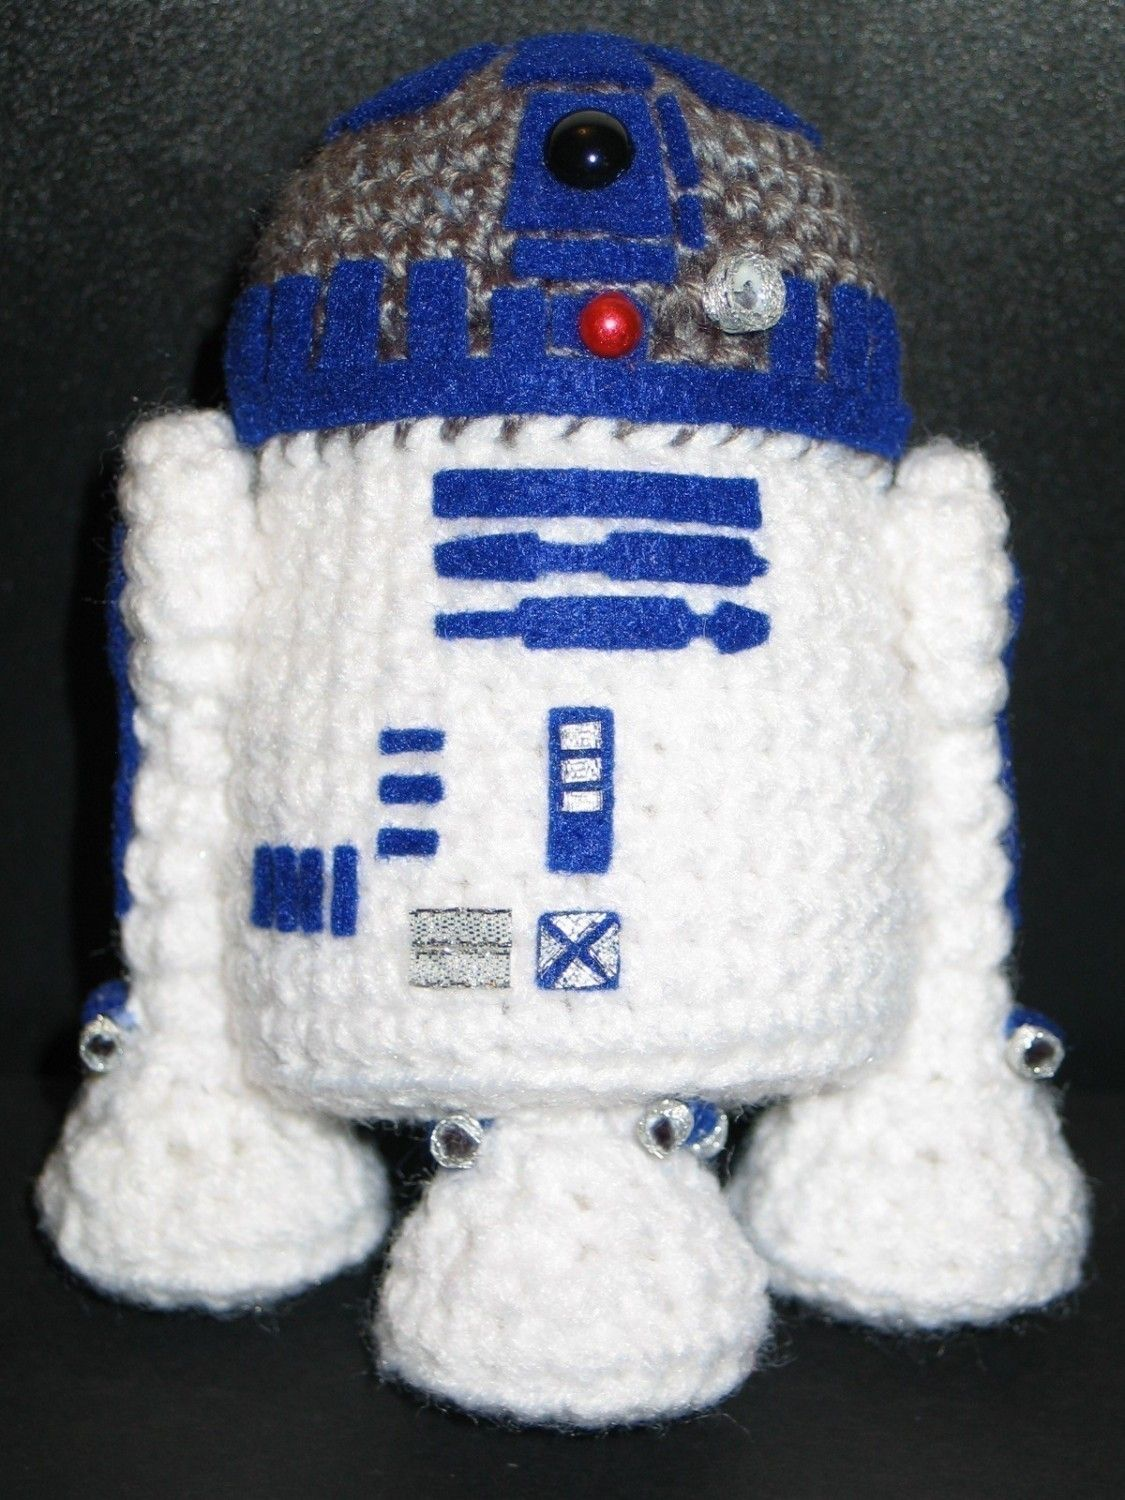 Amigurumi R2 D2 With Incredible Detail Need I Say Any More